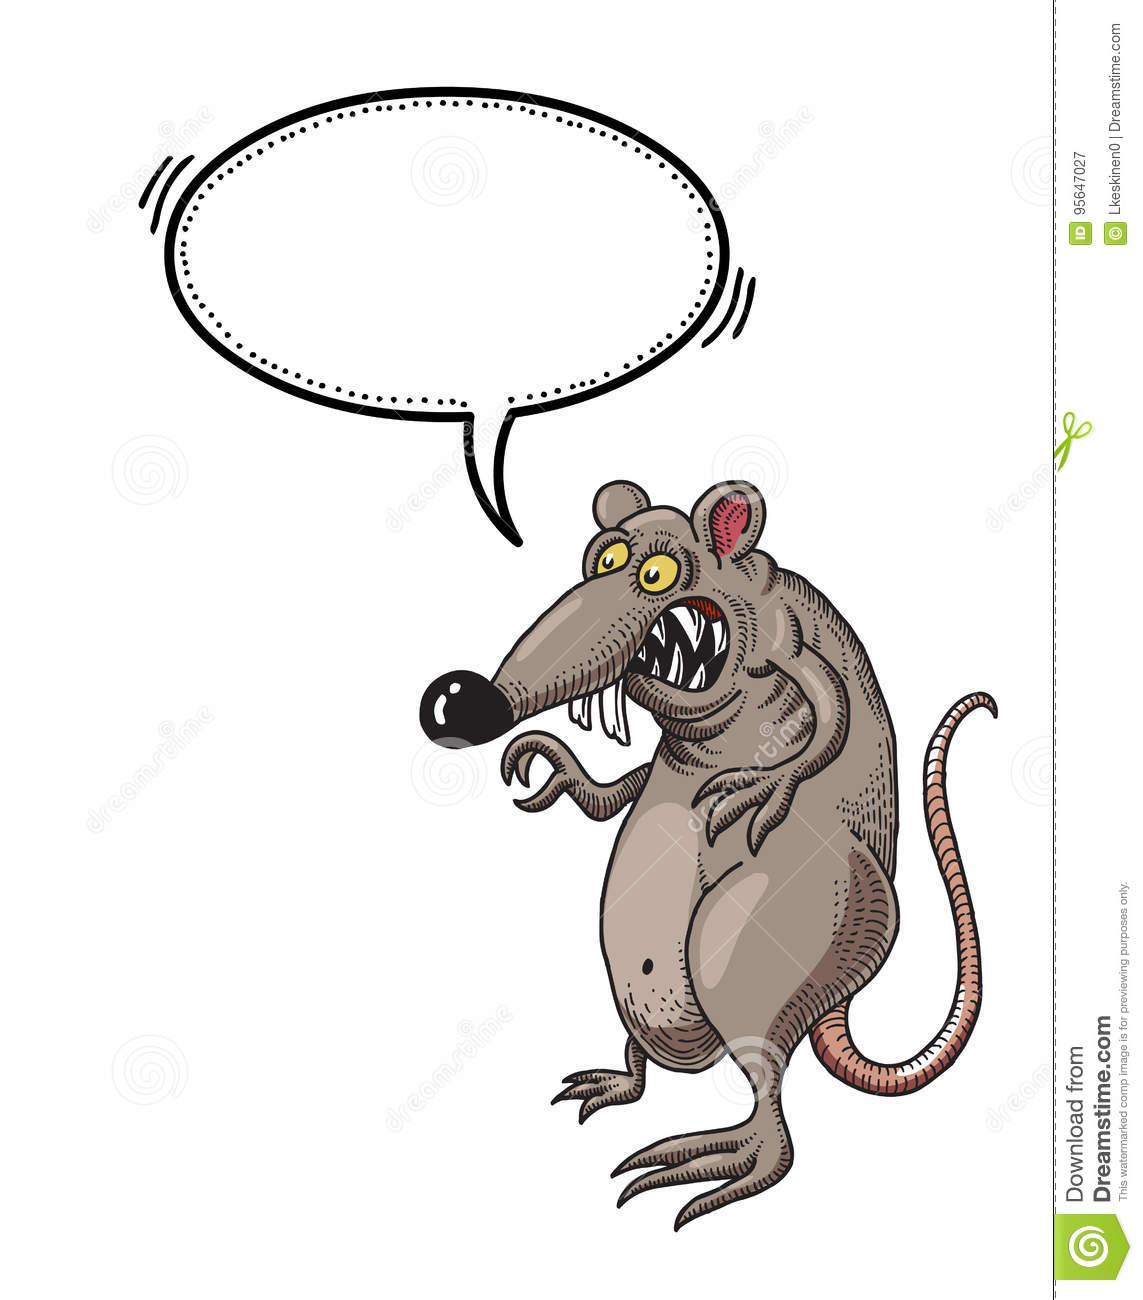 Evil rat-100 stock vector. Illustration of drawing, evil ...